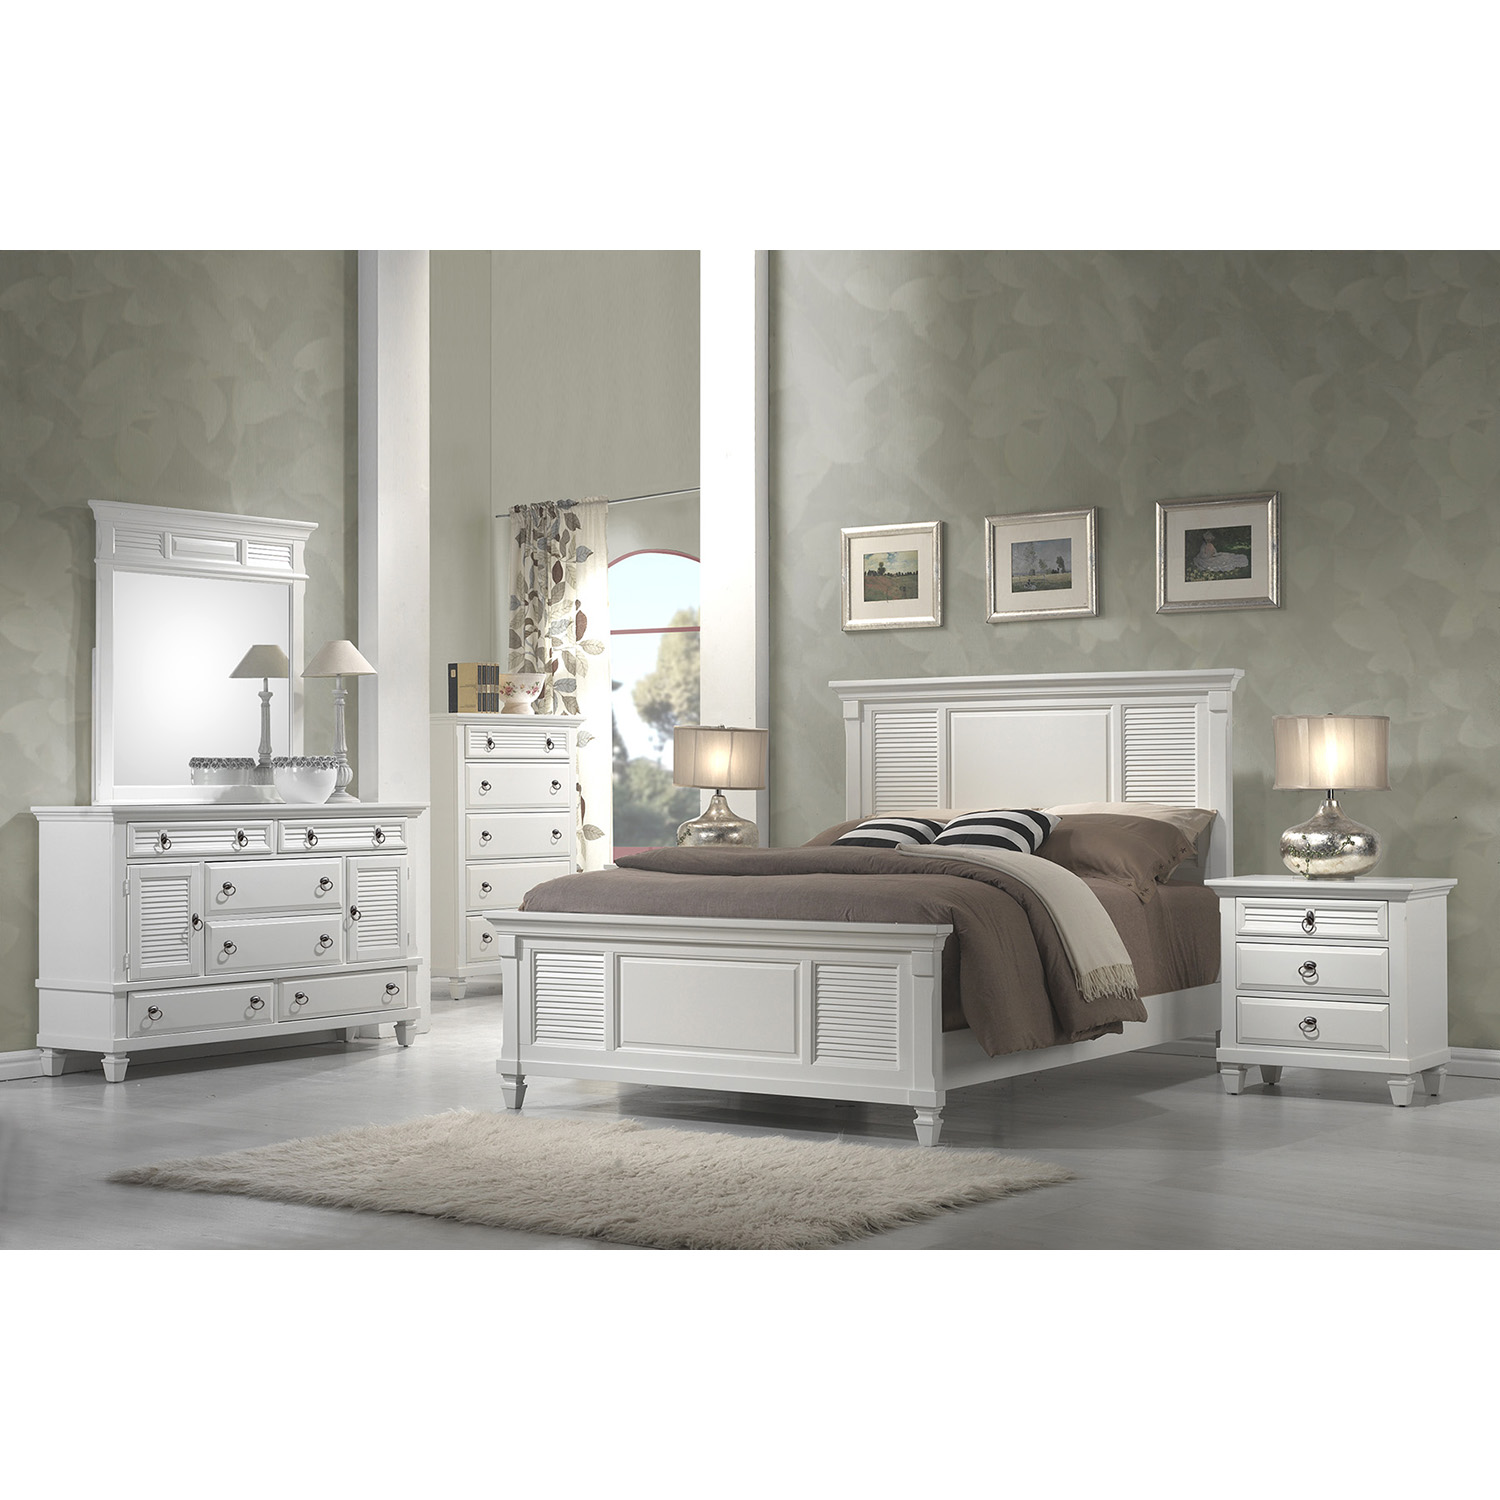 Winchester 5 Drawers Chest - White - ALP-1306-W-CH